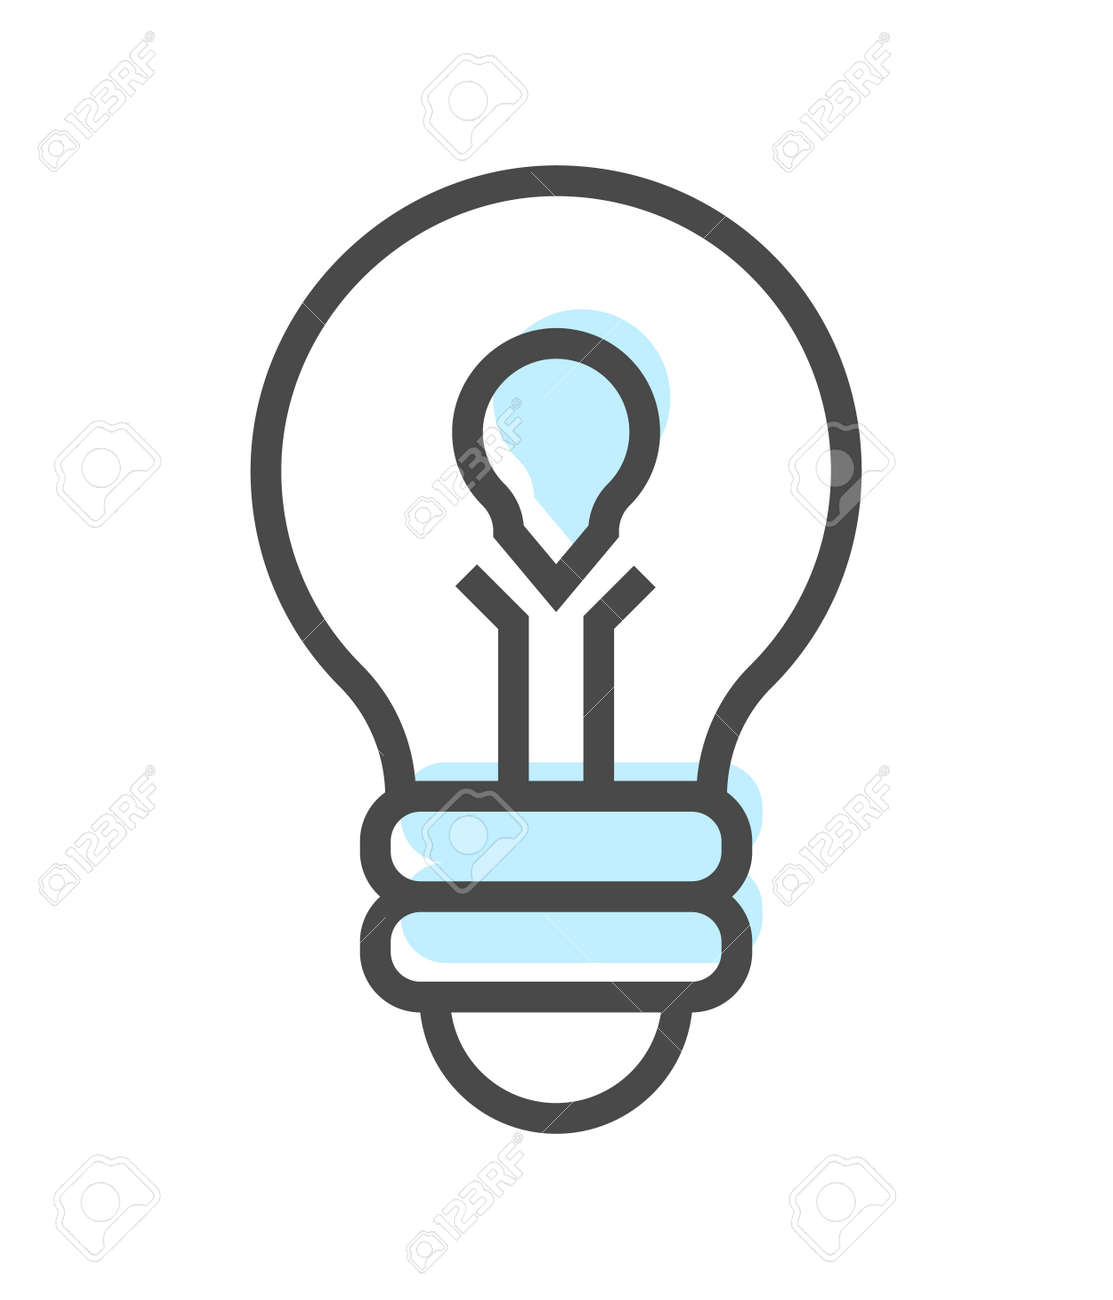 Artificial intelligence icon with lamp symbol Stock Photo - 99540206